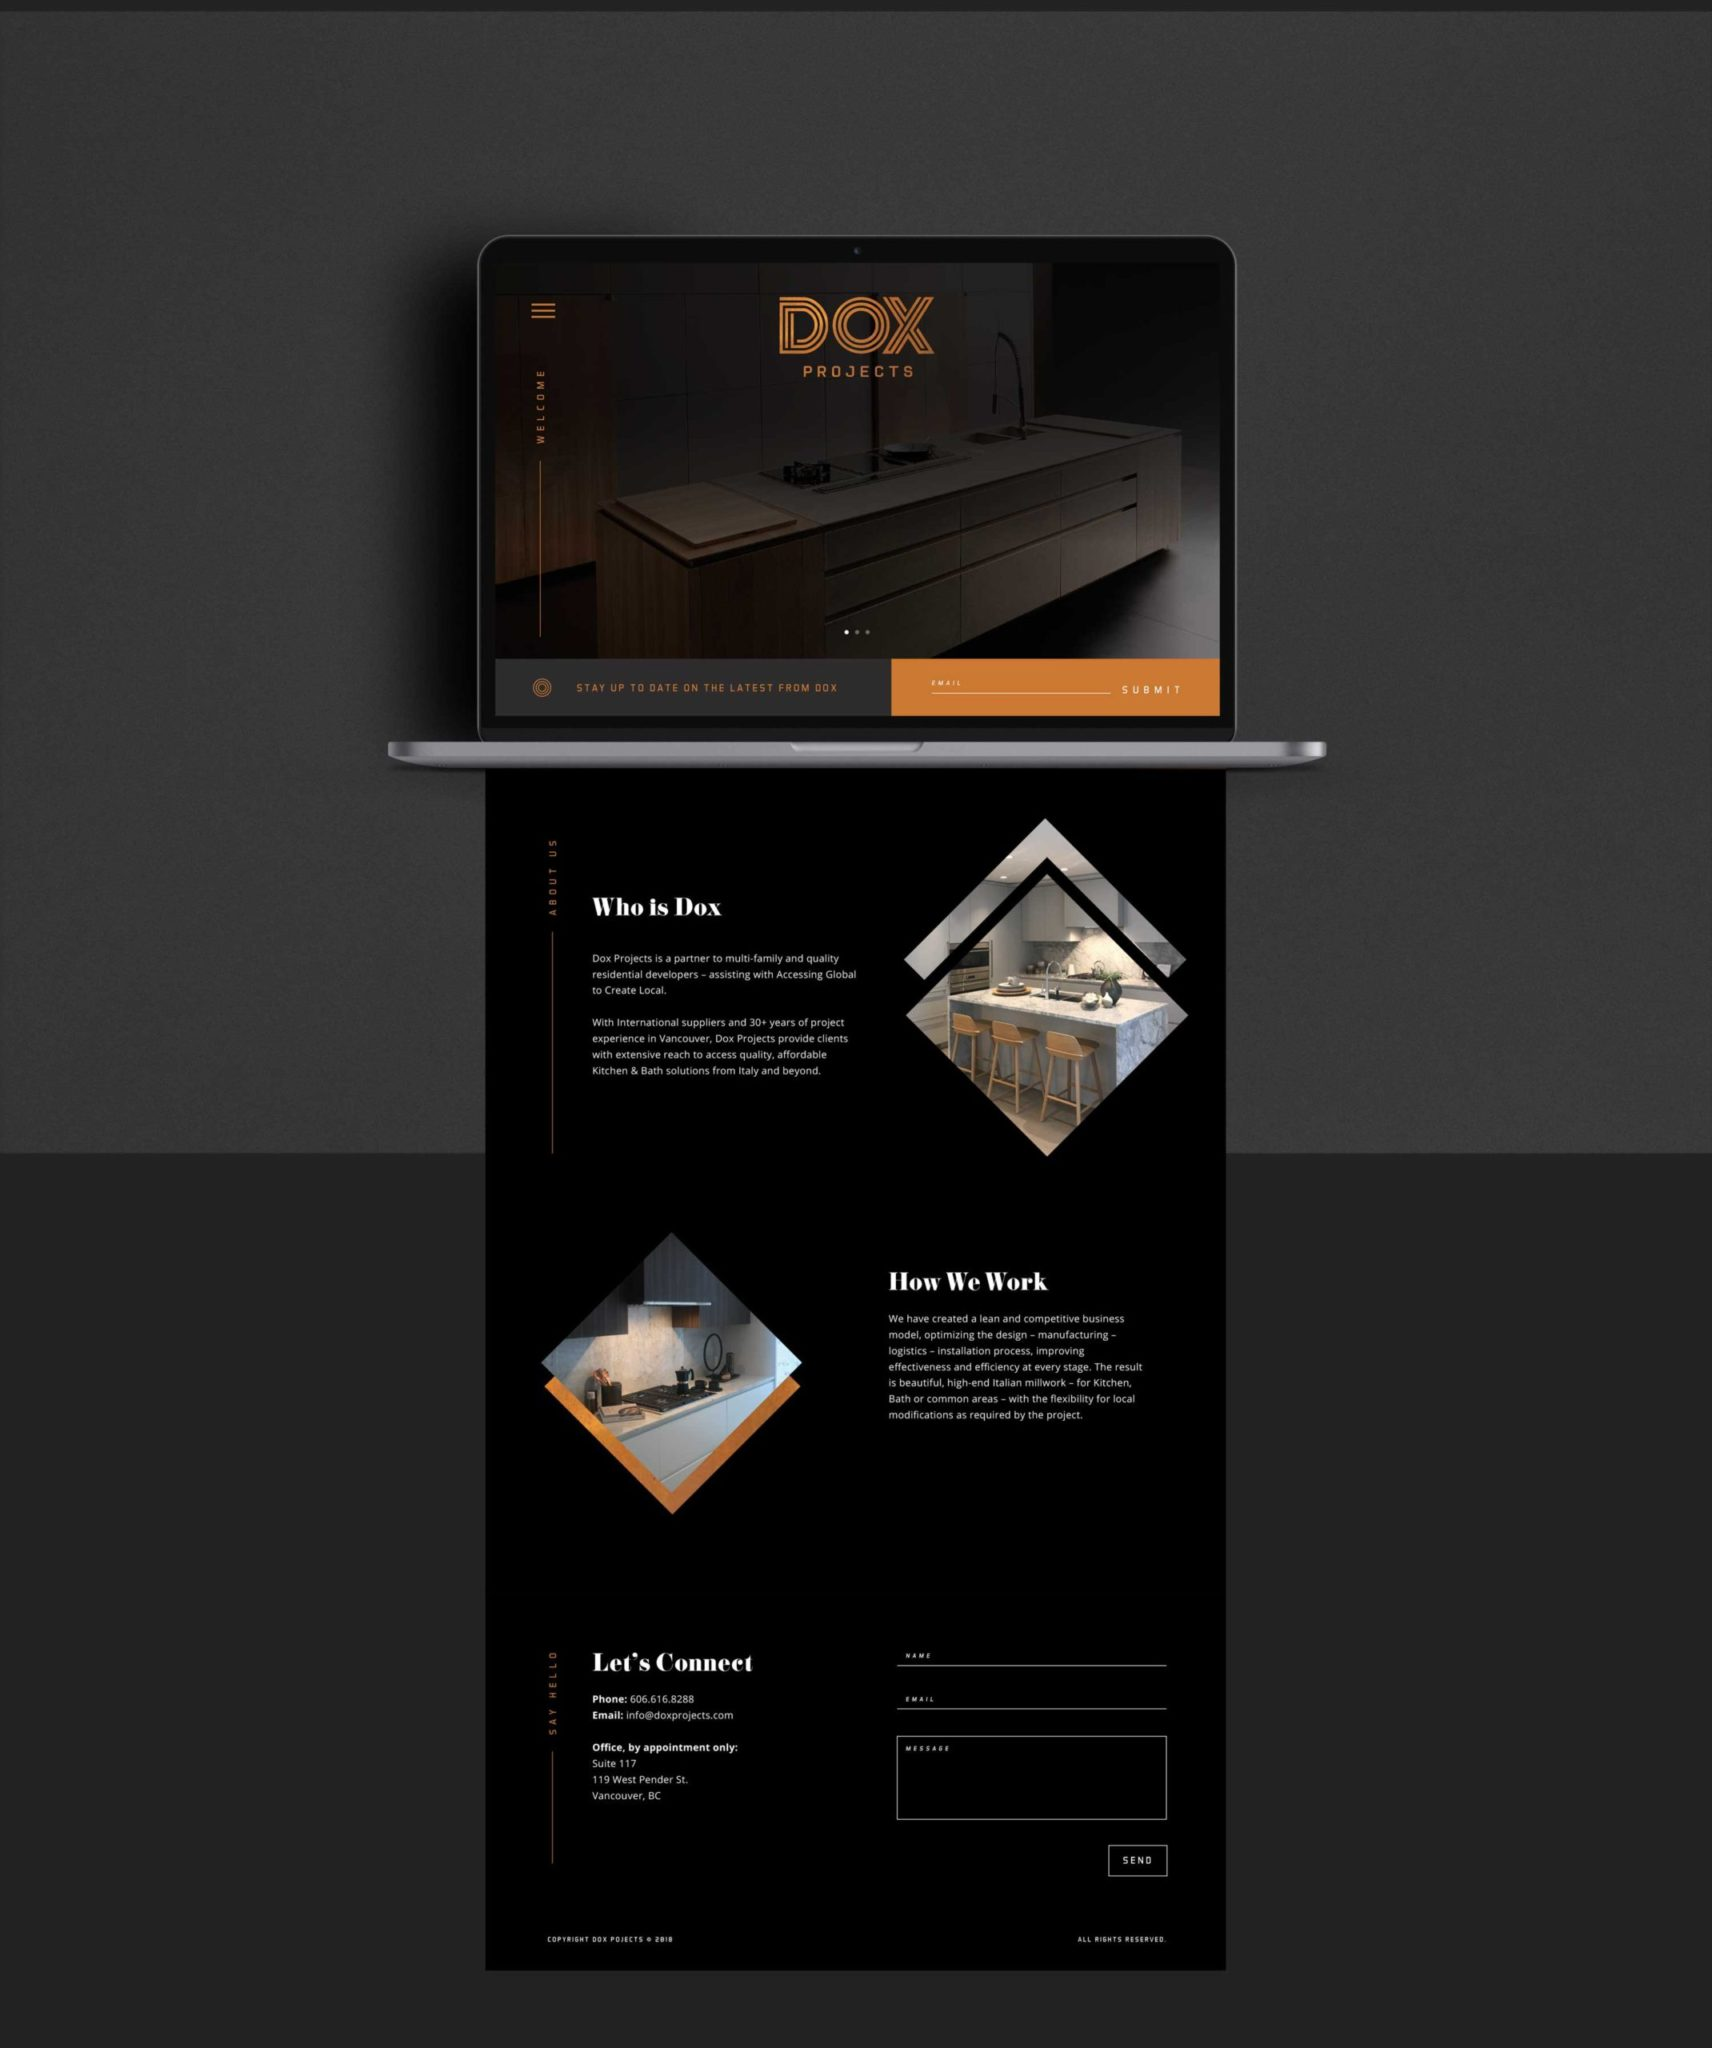 dox-projects-web-design